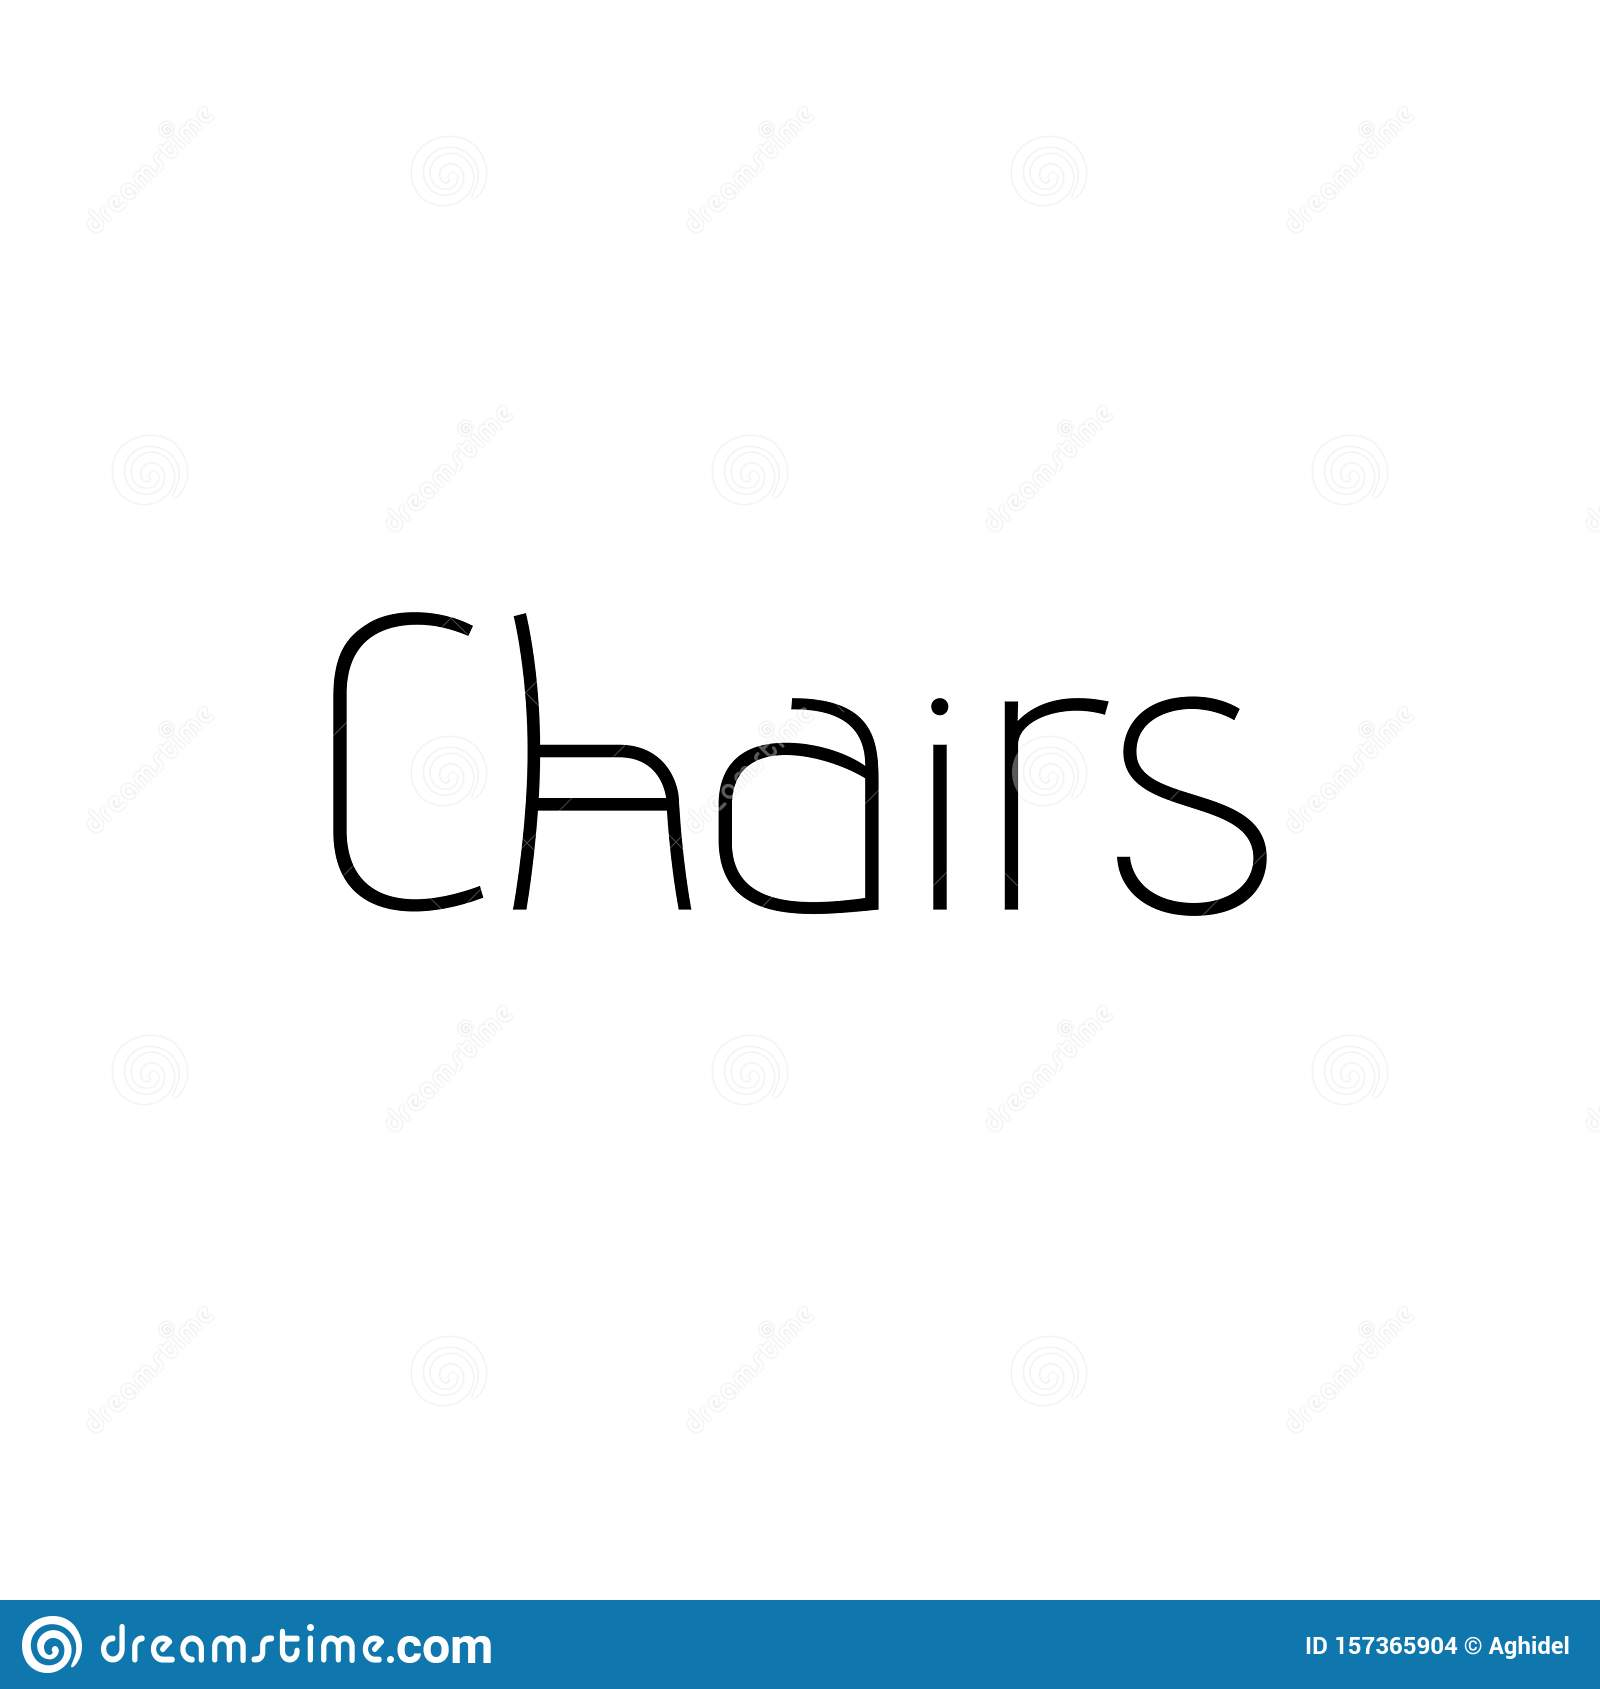 Chairs Text Logo Using Stylized Advent Font. Chair Symbol